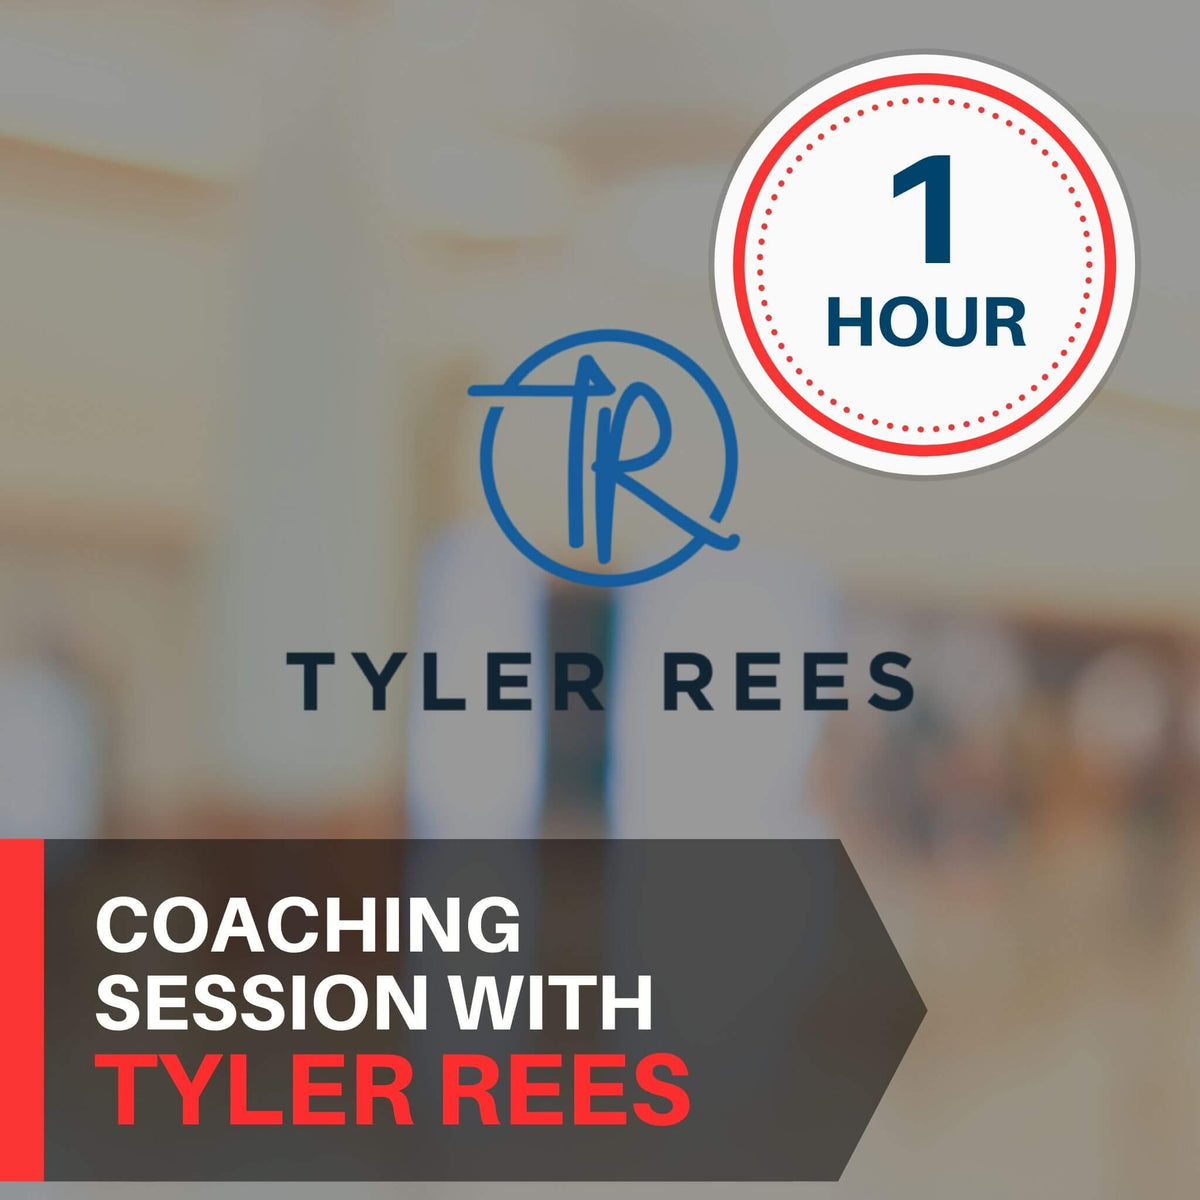 1 Hour Coaching Session With Tyler Rees